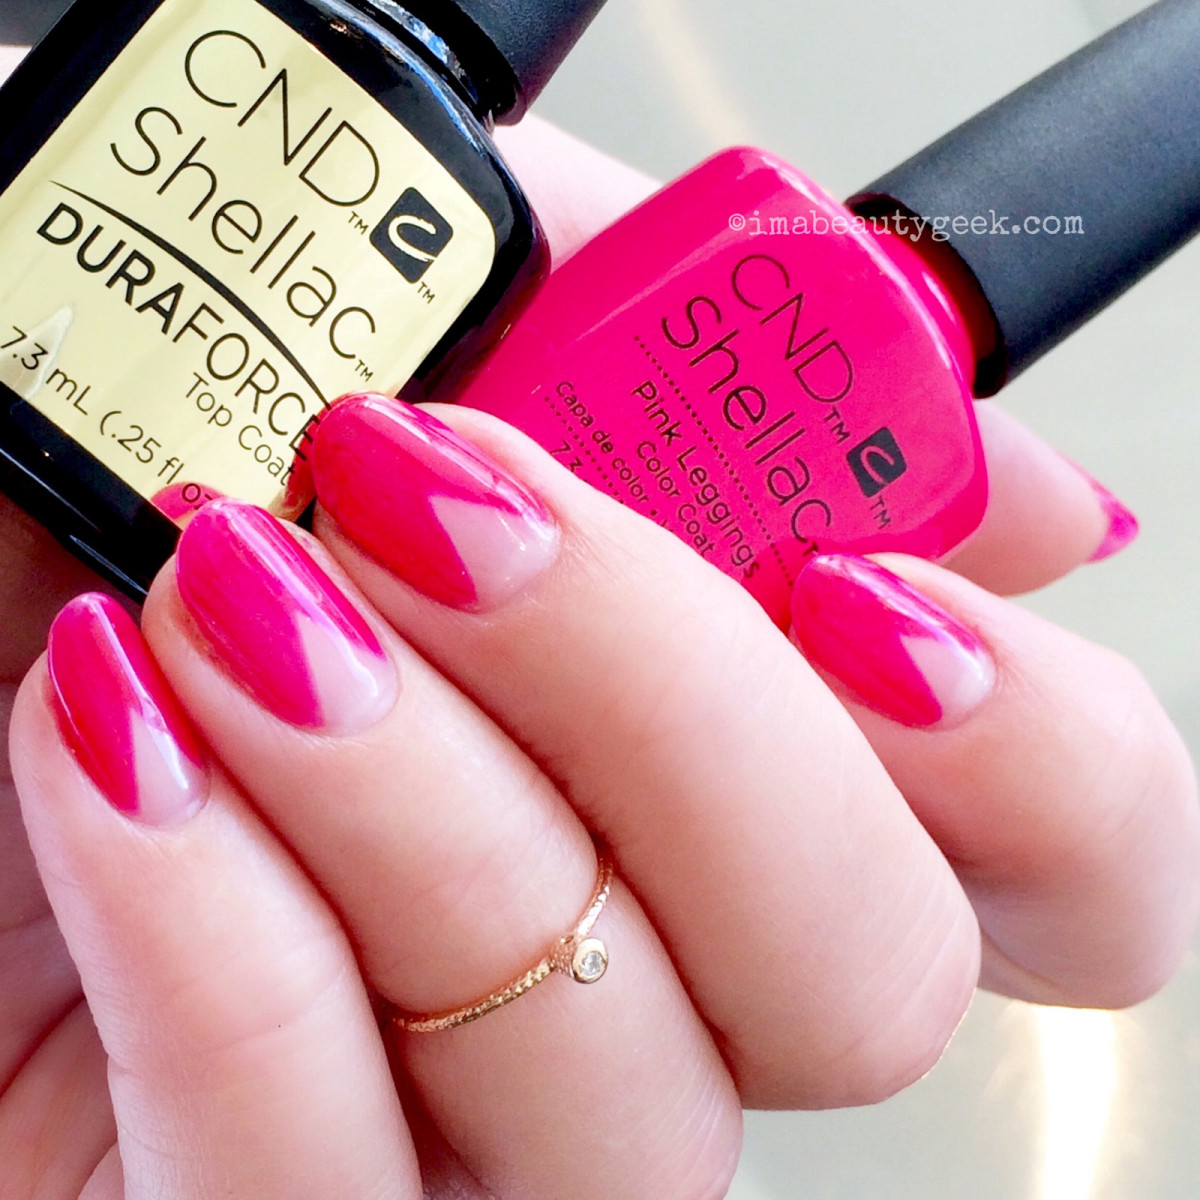 CND Shellac Pink Leggings (Spring 2017 New Wave collection) + Shellac Duraforce Top Coat